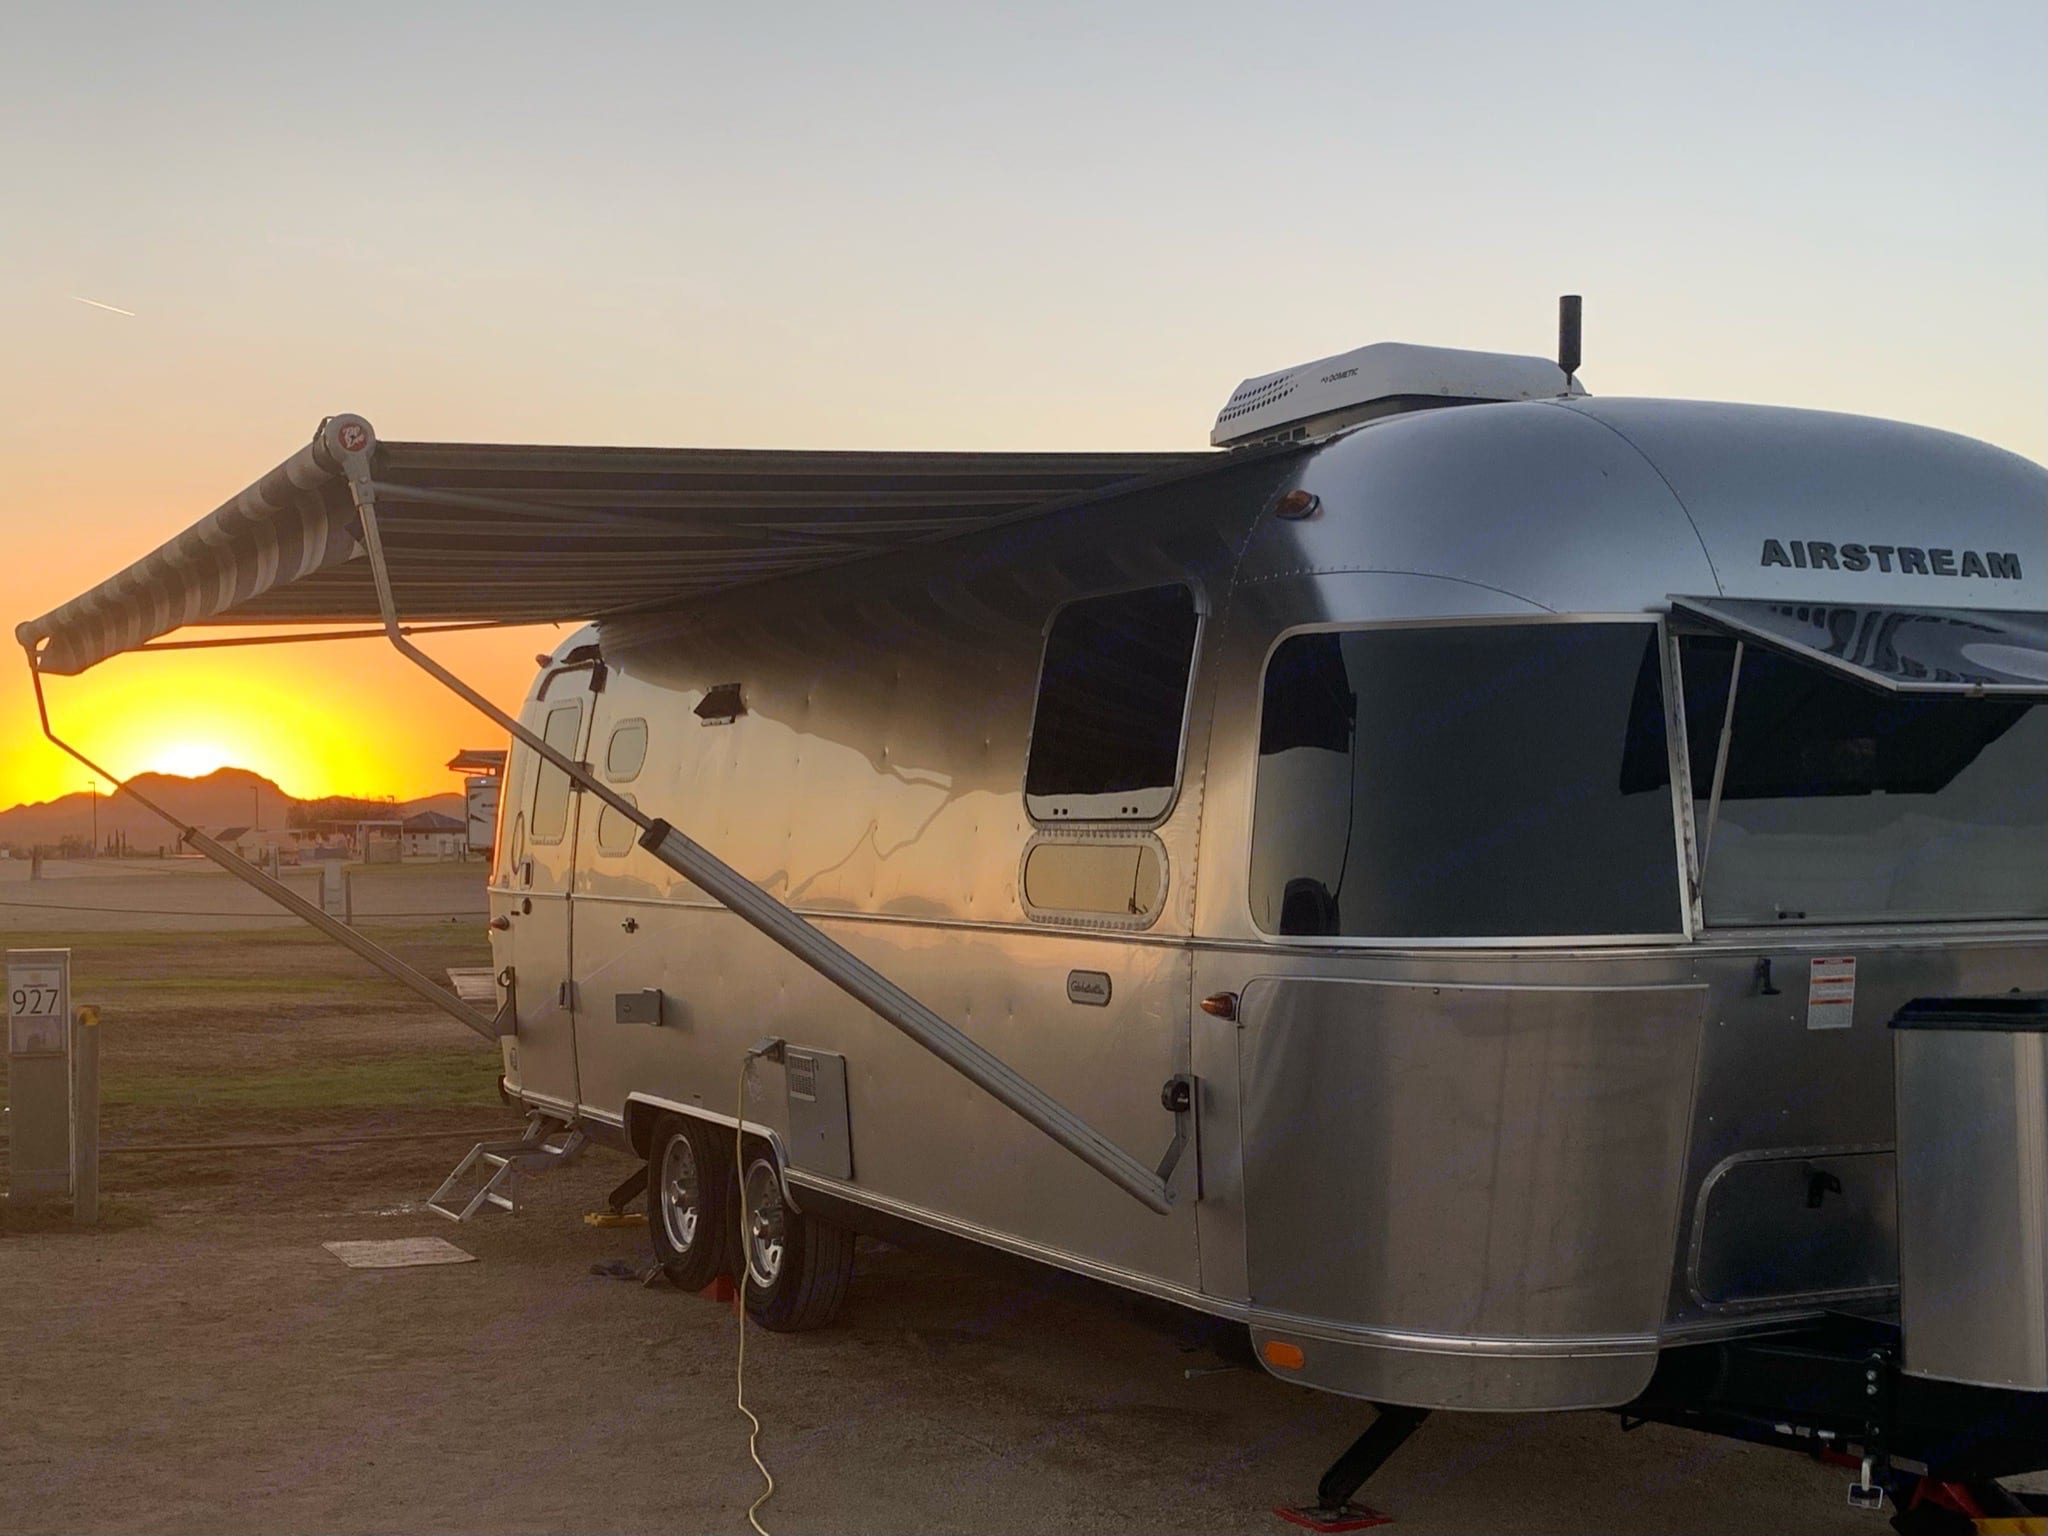 Sun setting over the lake behind our rig. The awning is out because we enjoyed drinks in the shade earlier.. Airstream Globetrotter 2019